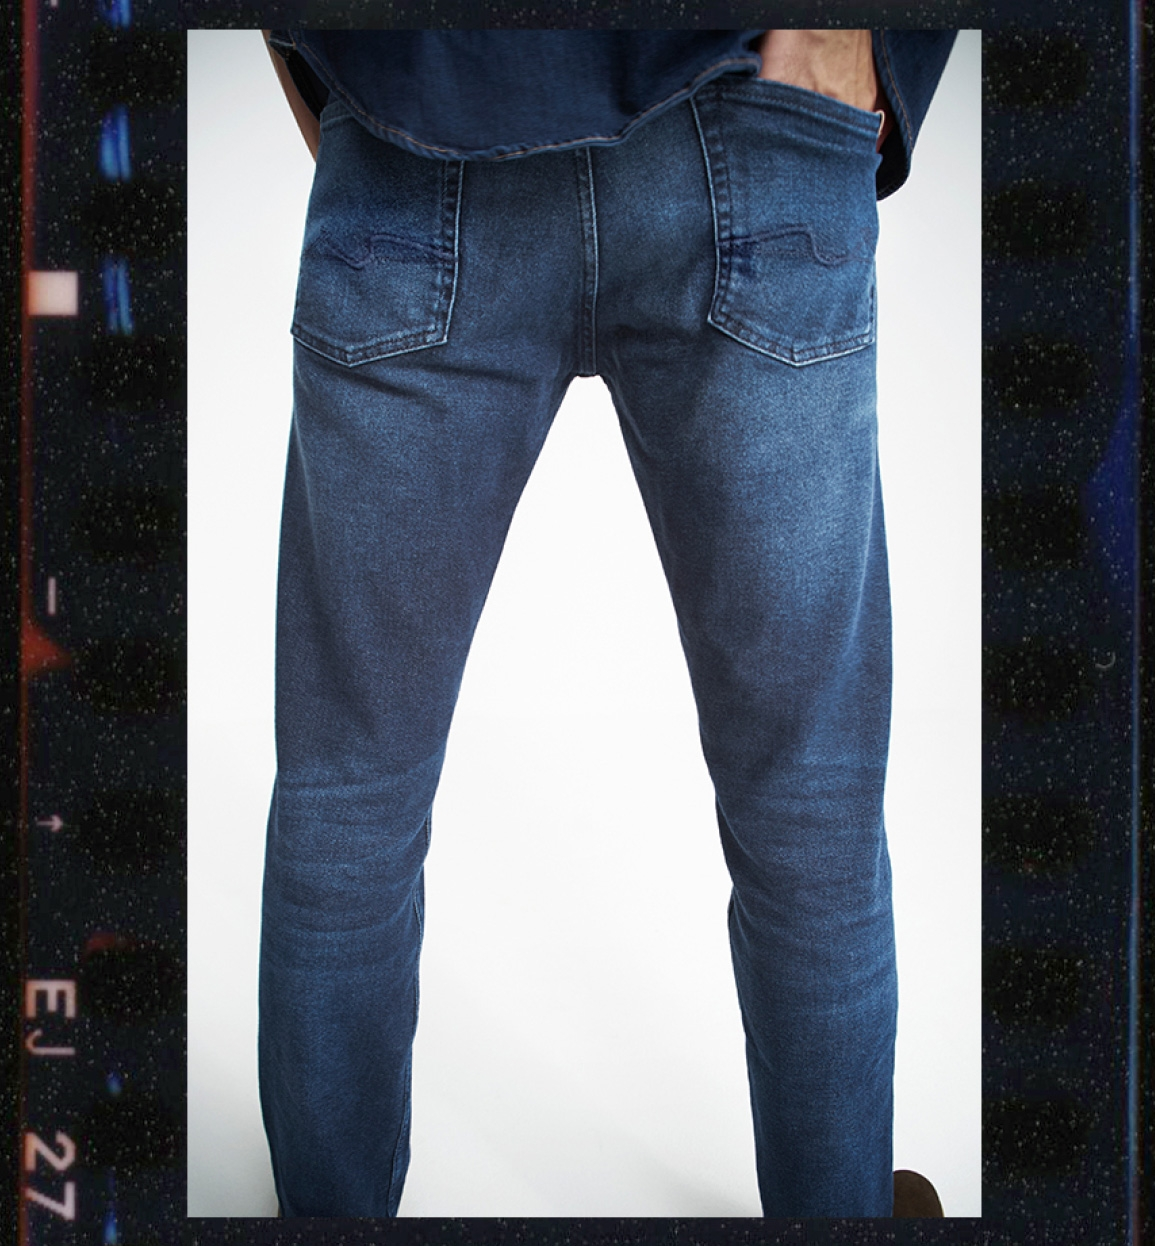 luxe vintage - 7 For all Mankind - Jeans, Jacken & Accessoires, jeans, high waist jeans, jeans high waist, jeans jacken, boyfriend jeans, jeans jacken damen, jeans damen, jeans jacken herren, jeans herren, herren jeans, skin jeans, skinny jeans, herrlich jeans, damen jeans, herrlicher jeans